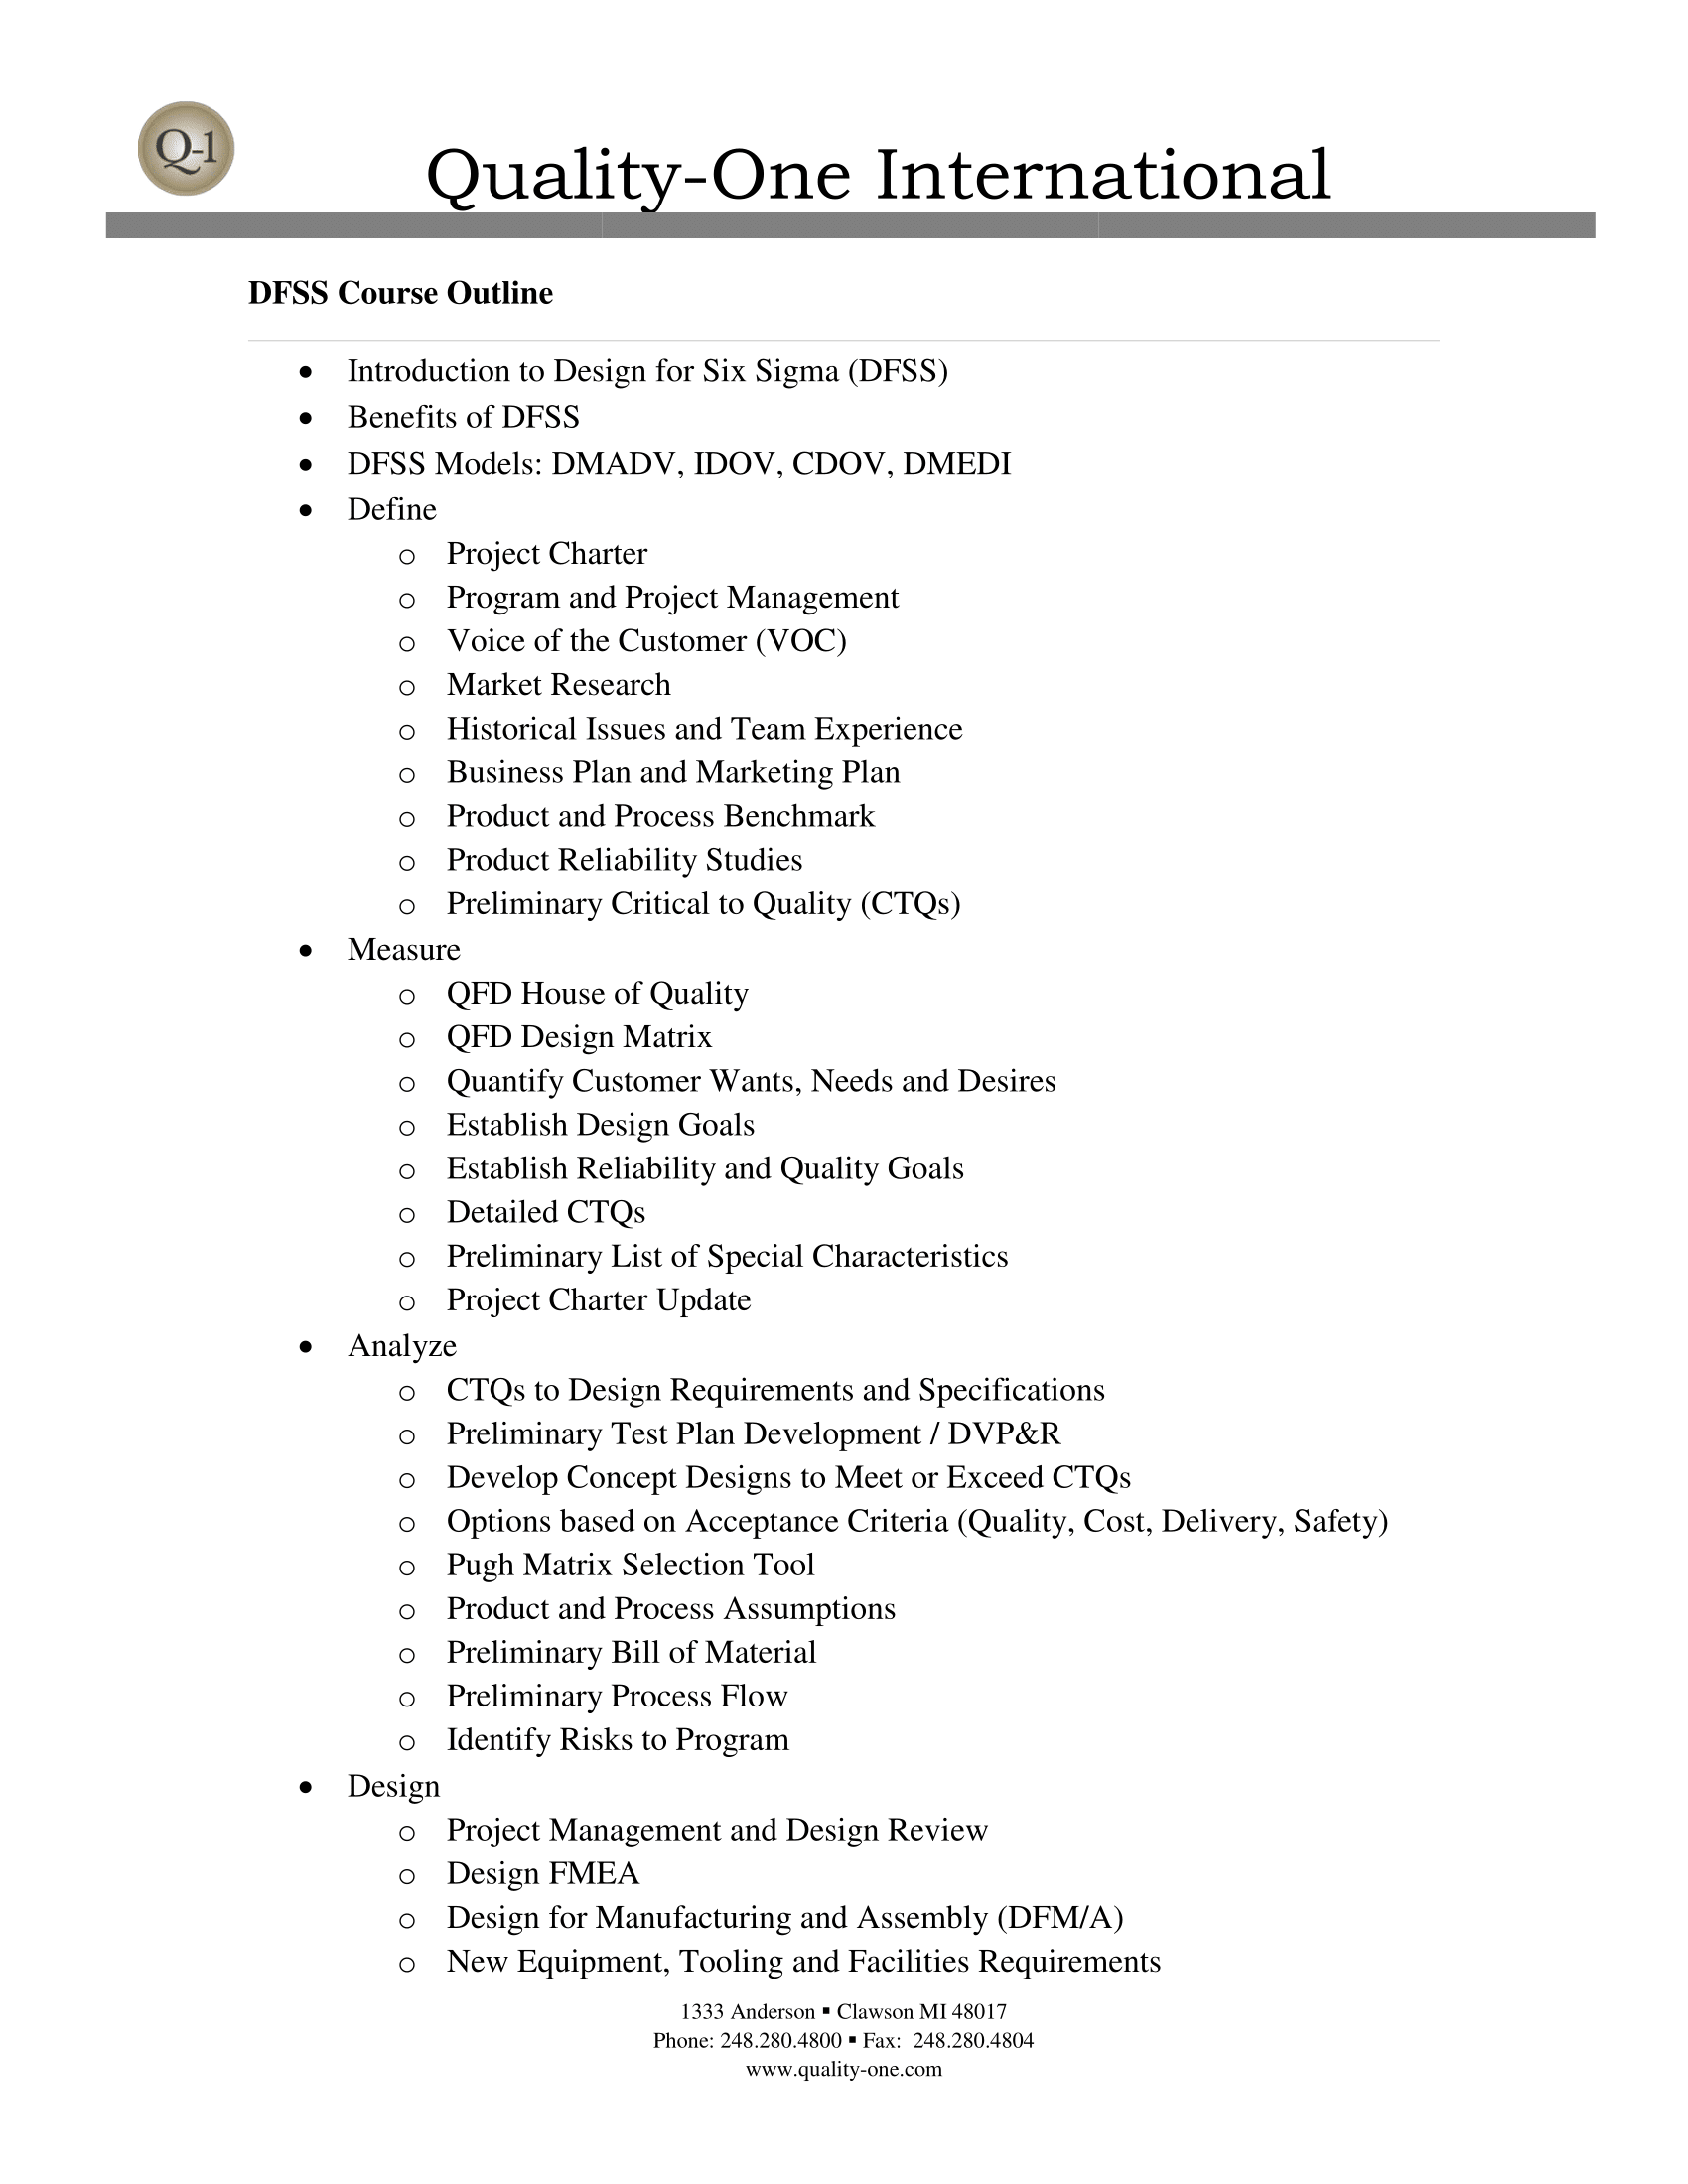 DFSS Training Course Outline